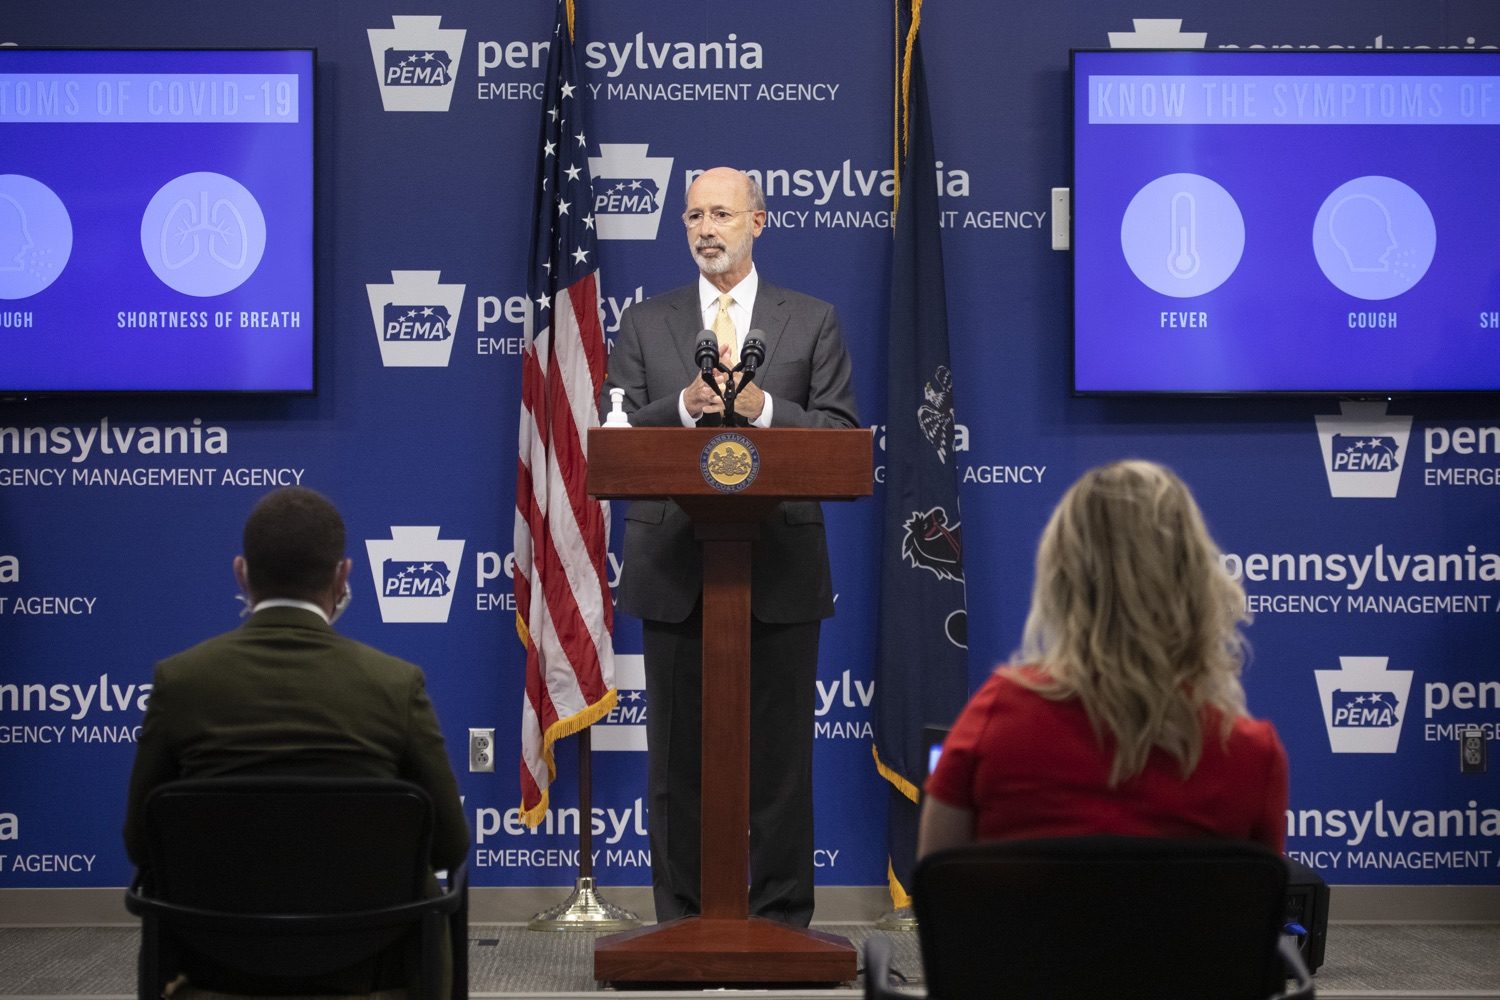 """<a href=""""https://filesource.wostreaming.net/commonwealthofpa/photo/18201_gov_orasure_dz_011.jpg"""" target=""""_blank"""">⇣Download Photo<br></a>Pennsylvania Governor Tom Wolf speaking to the press.  Today, Governor Tom Wolf announced that OraSure Technologies Inc., a developer and manufacturer of rapid diagnostic tests, collection and stabilization devices headquartered in Northampton County, will expand its manufacturing operations in the Lehigh Valley, creating 177 new, full-time jobs and retaining 233 jobs.  Harrisburg, PA  August 11, 2020"""